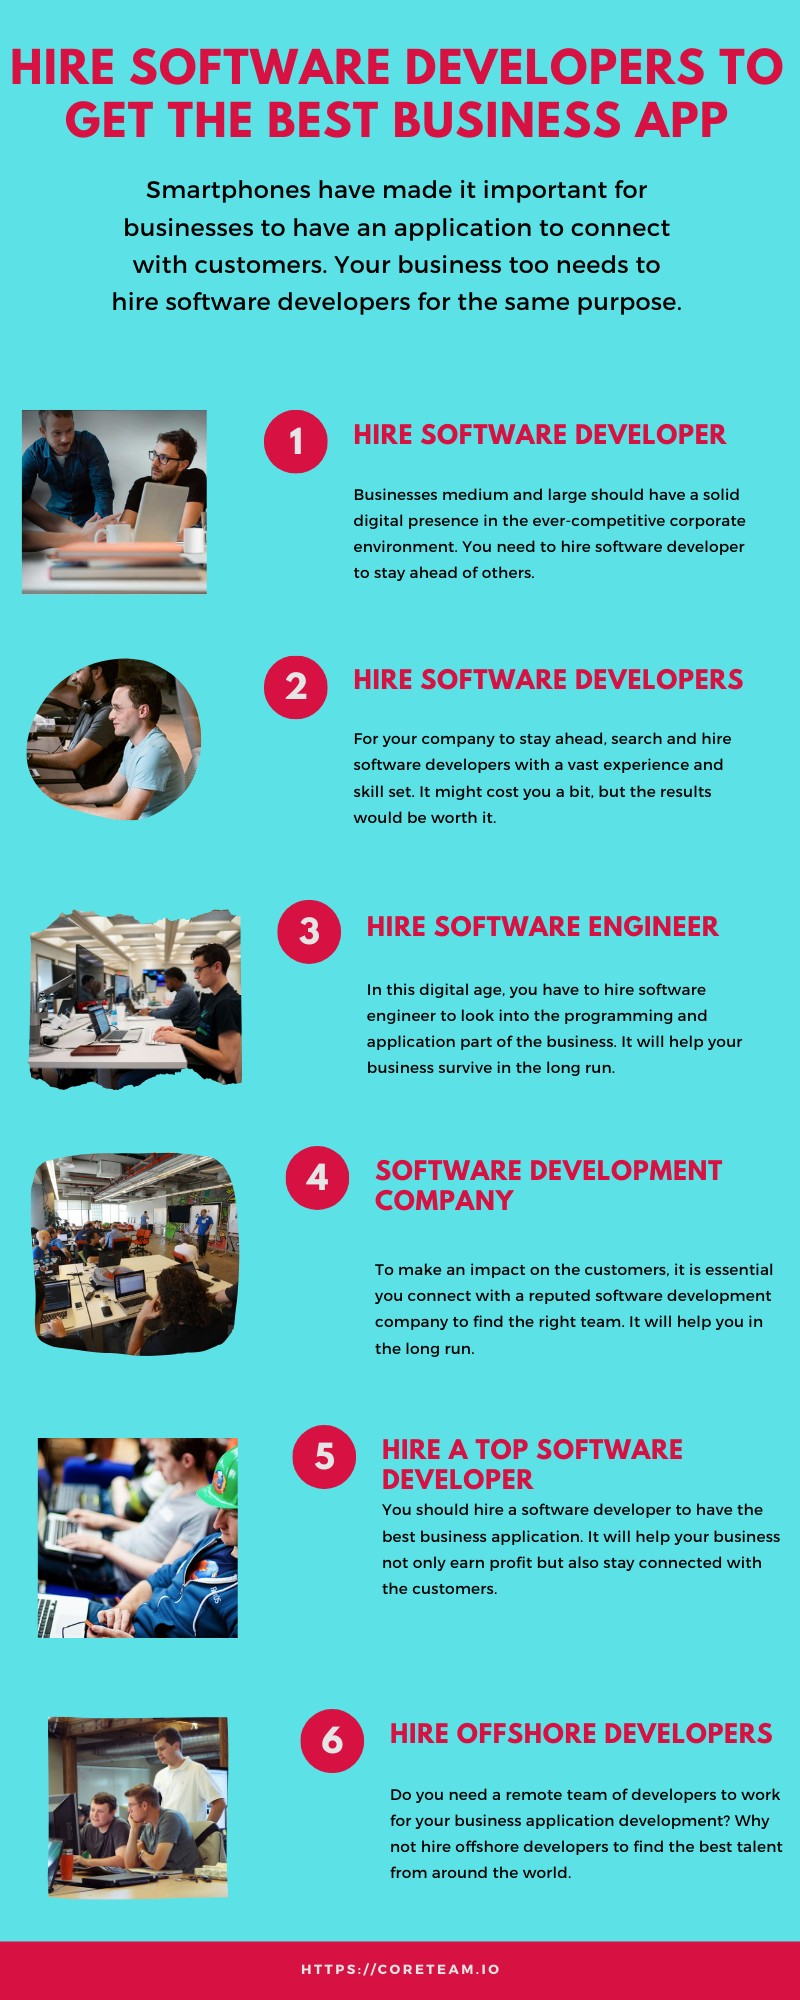 How To Hire Best Software Developers